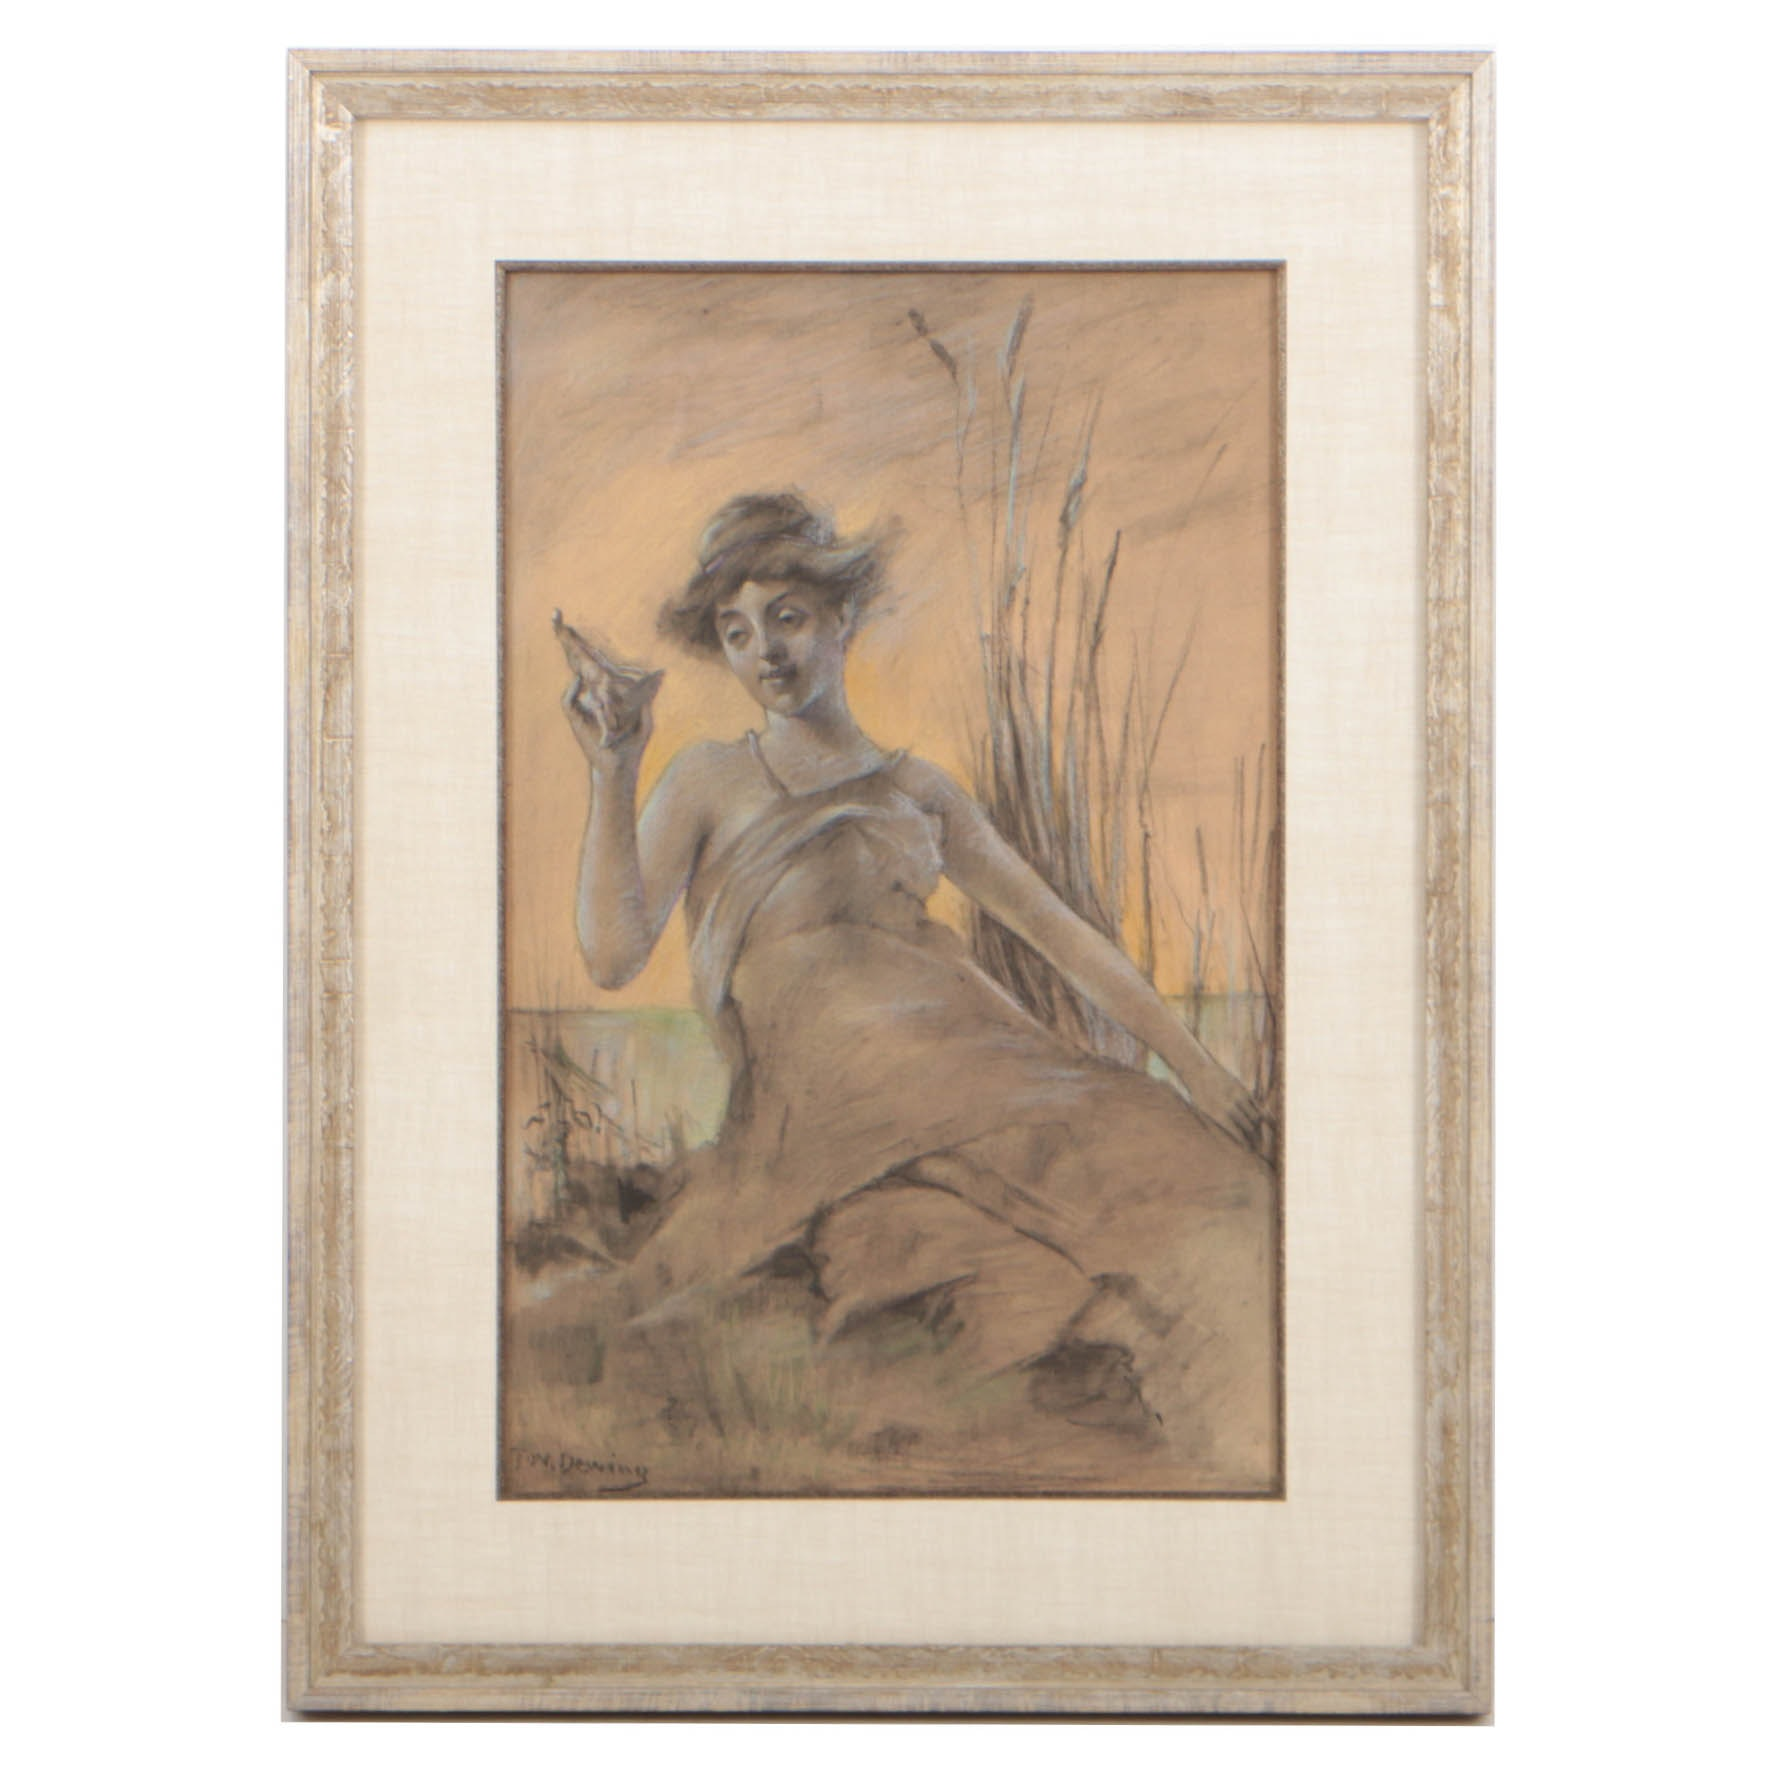 Thomas Wilmer Dewing Early 20th Century Pastel and Charcoal Drawing